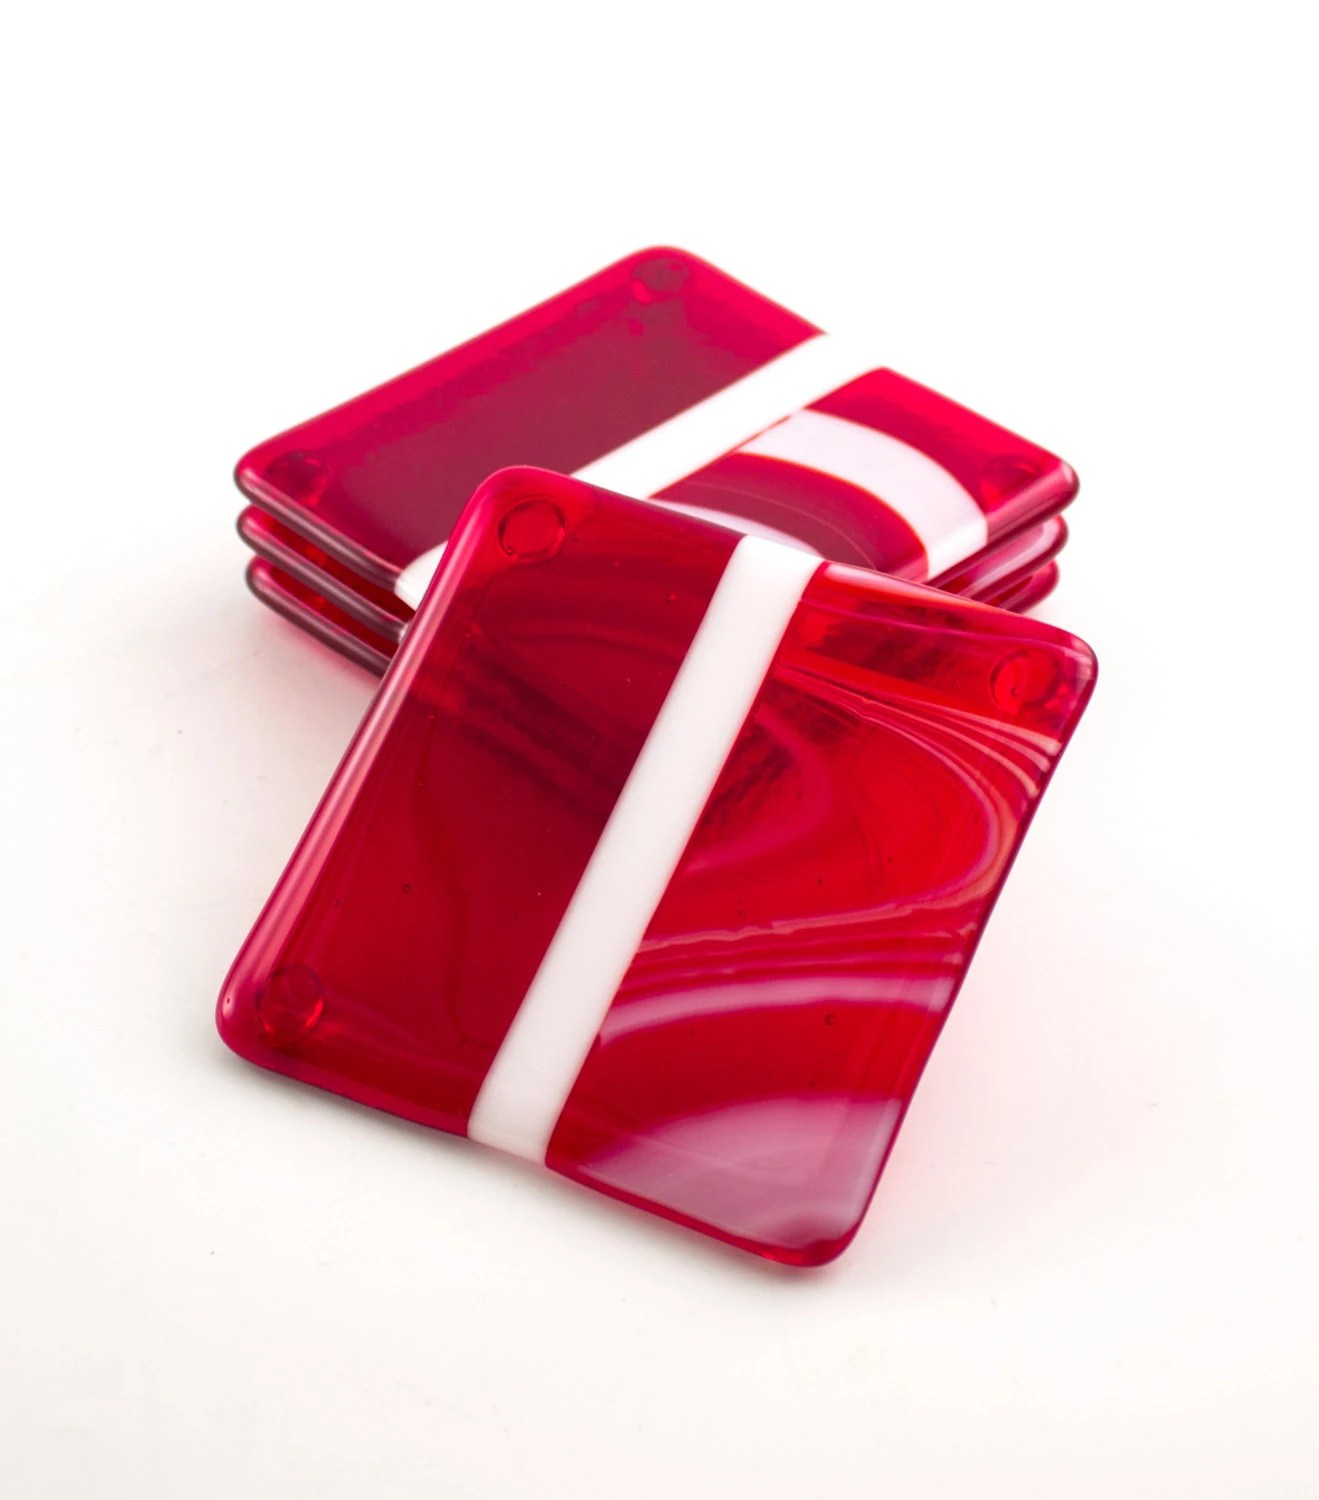 Cool Bar Coasters Red Coasters Fused Glass Unique Coasters Home Bar Red Home